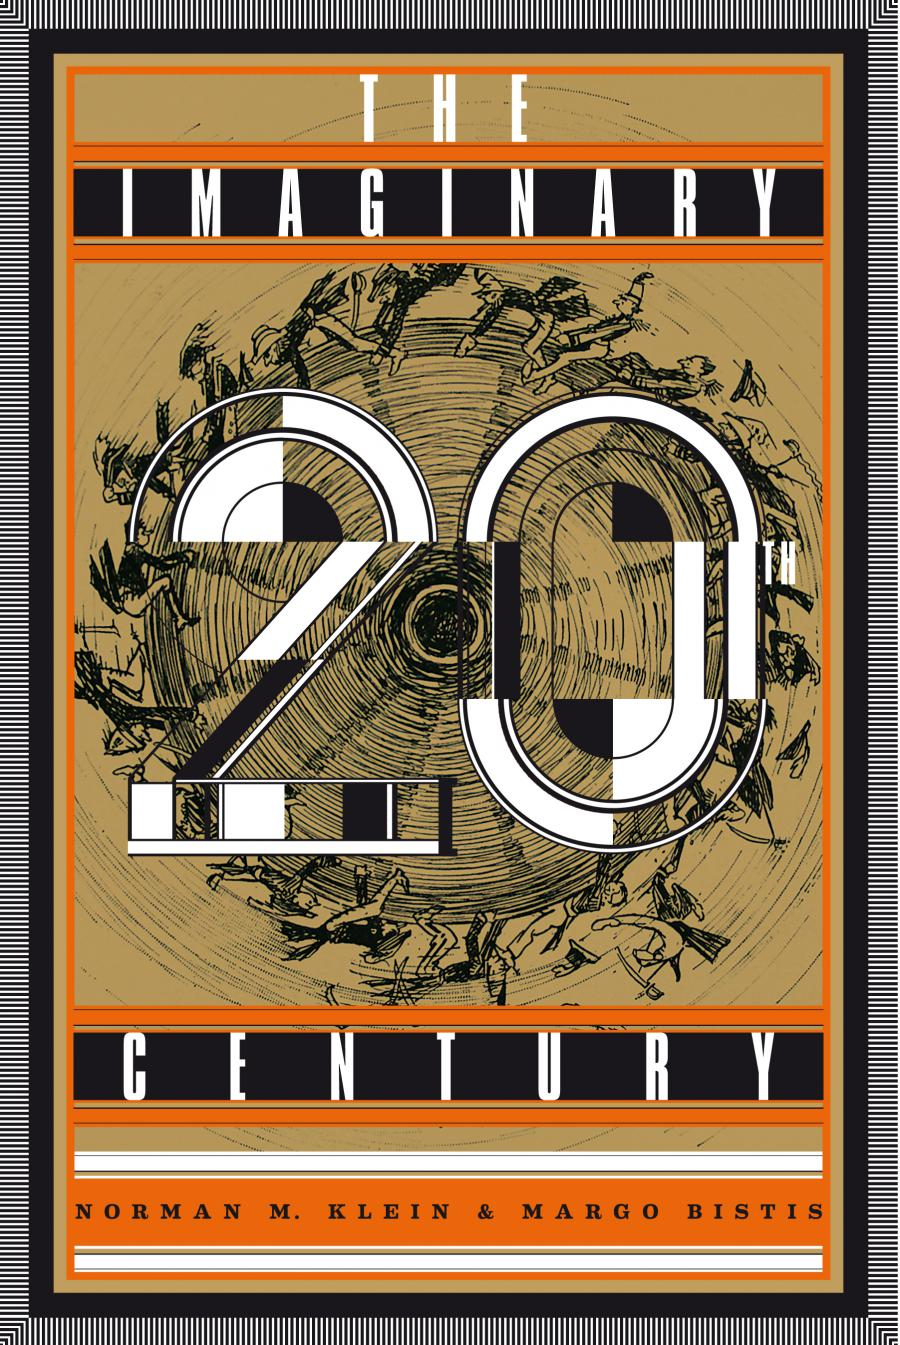 Cover der Publikation »The Imaginary 20th Century«, text on golden background